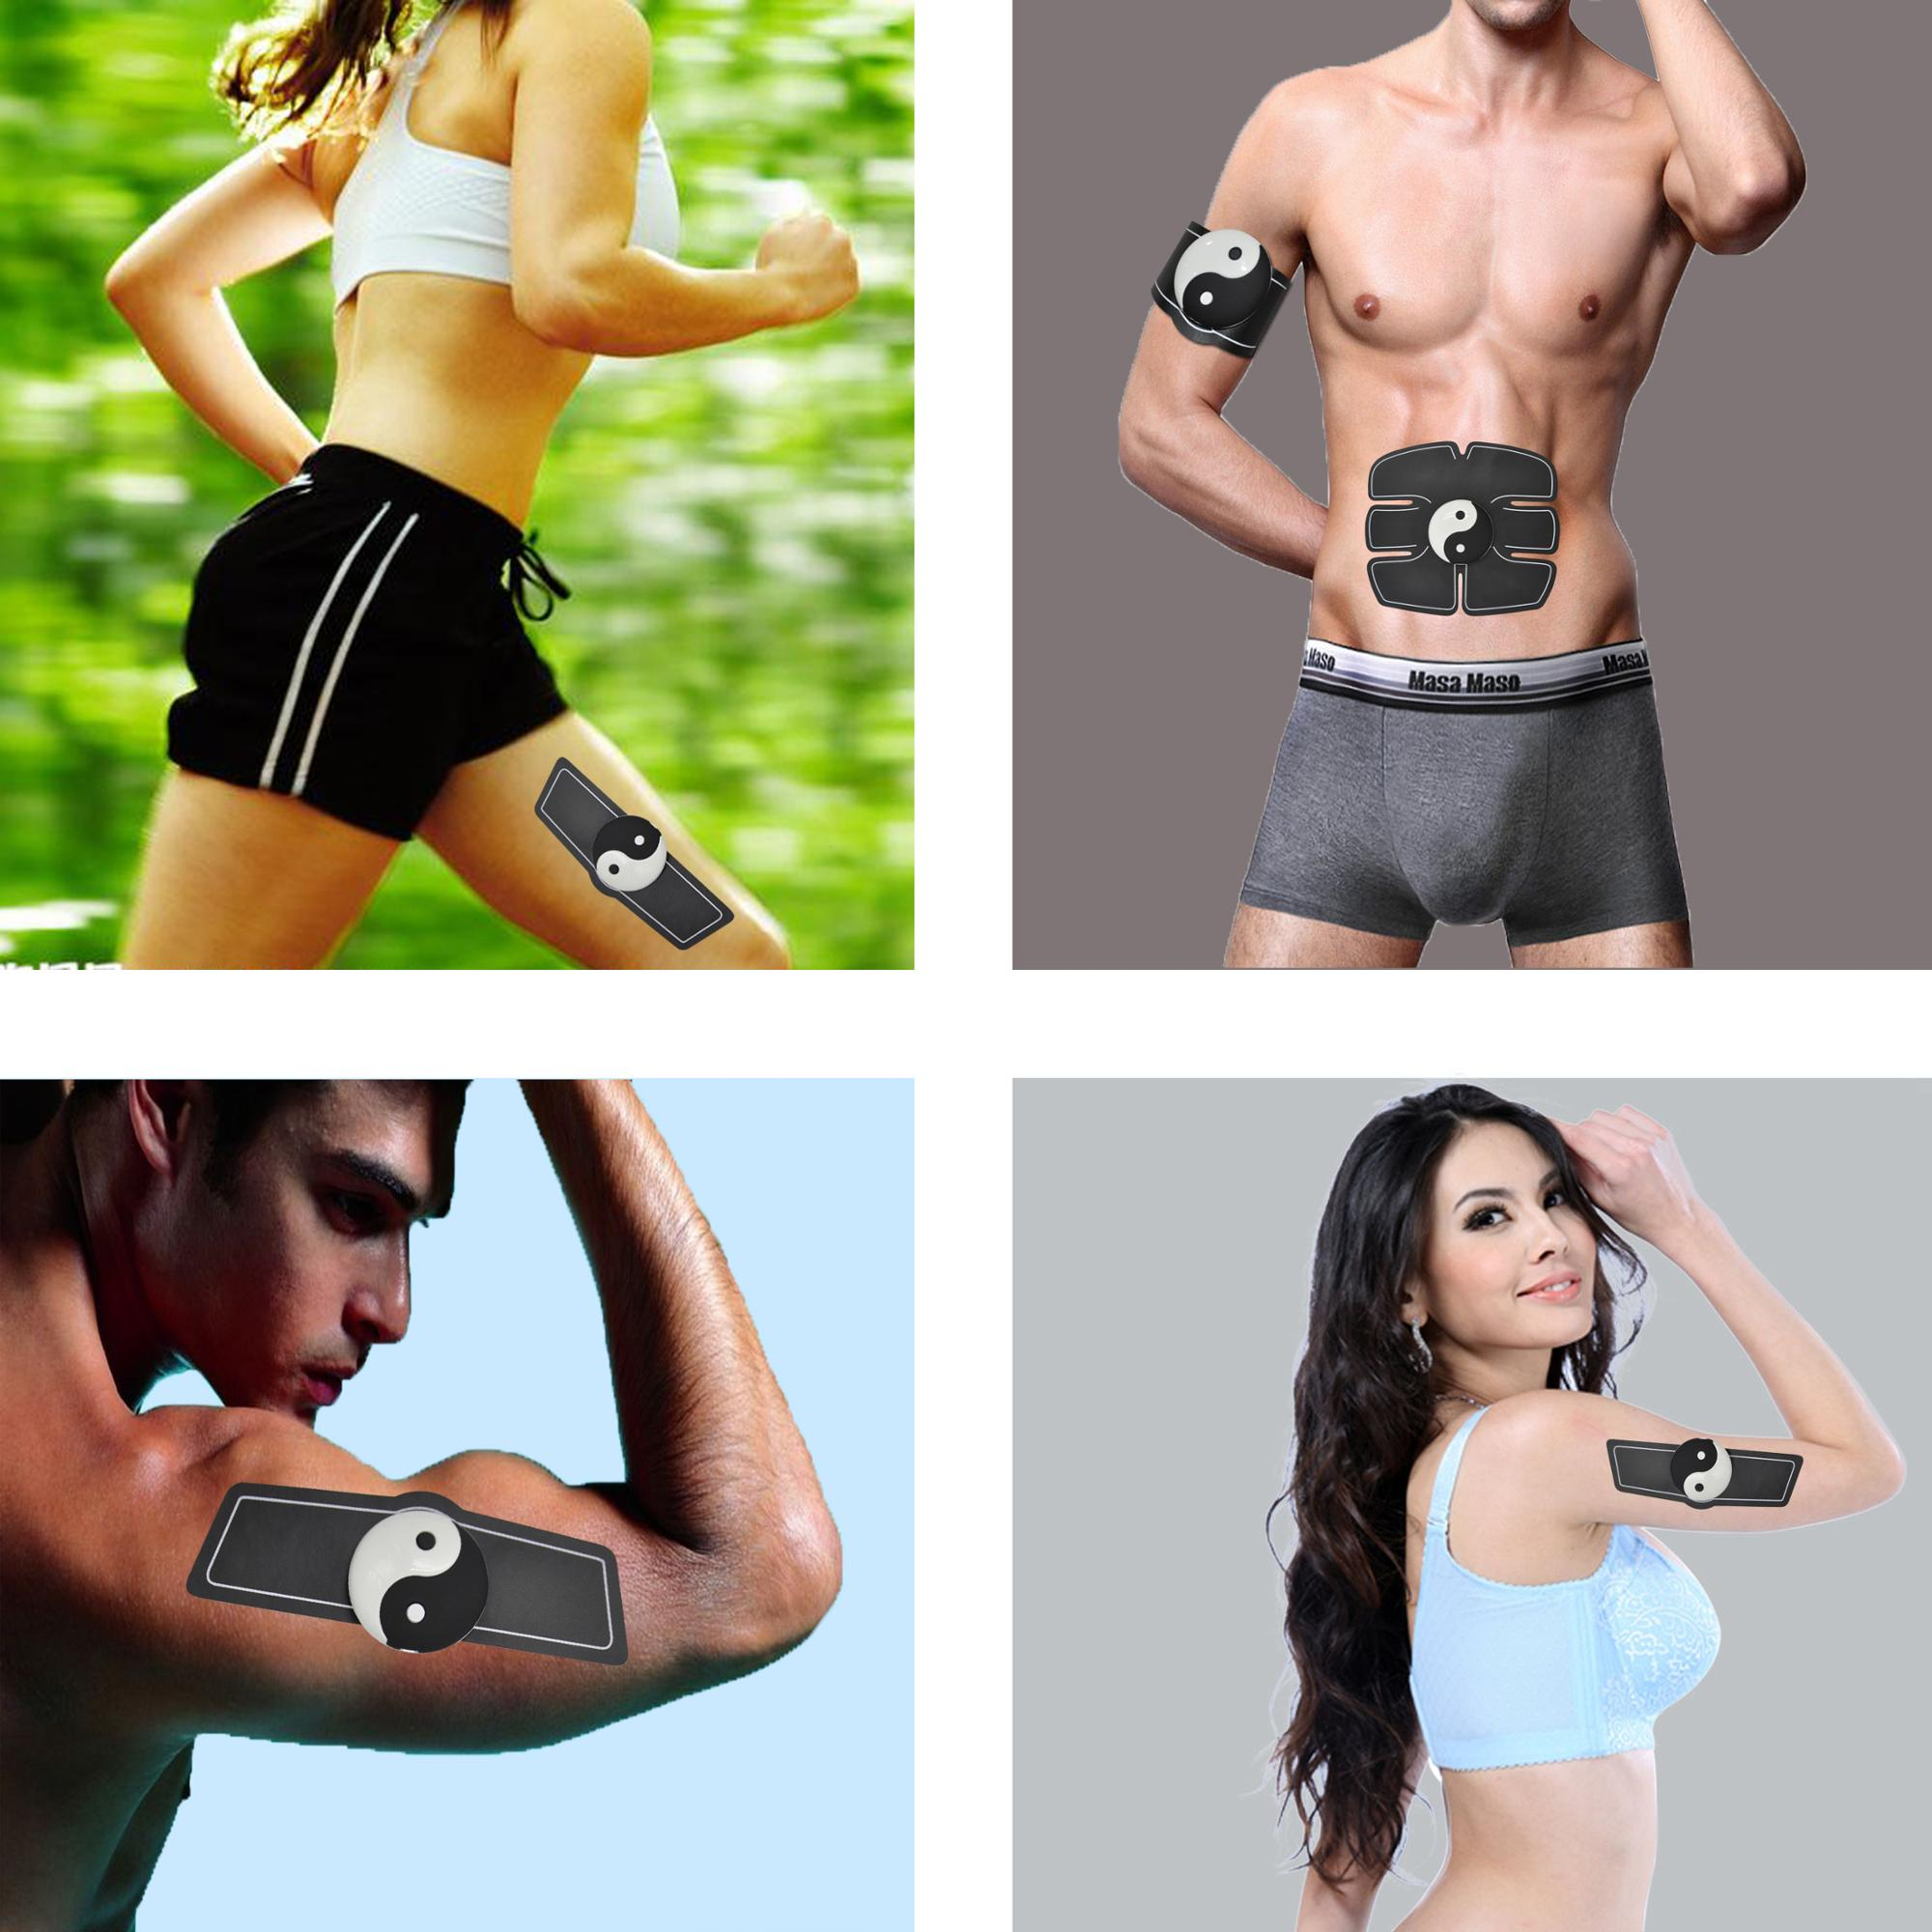 Smart Wireless EMS Massage Muscle Training ABS fitness Stimulator for abdormen hip SUNGPO Manufacturer